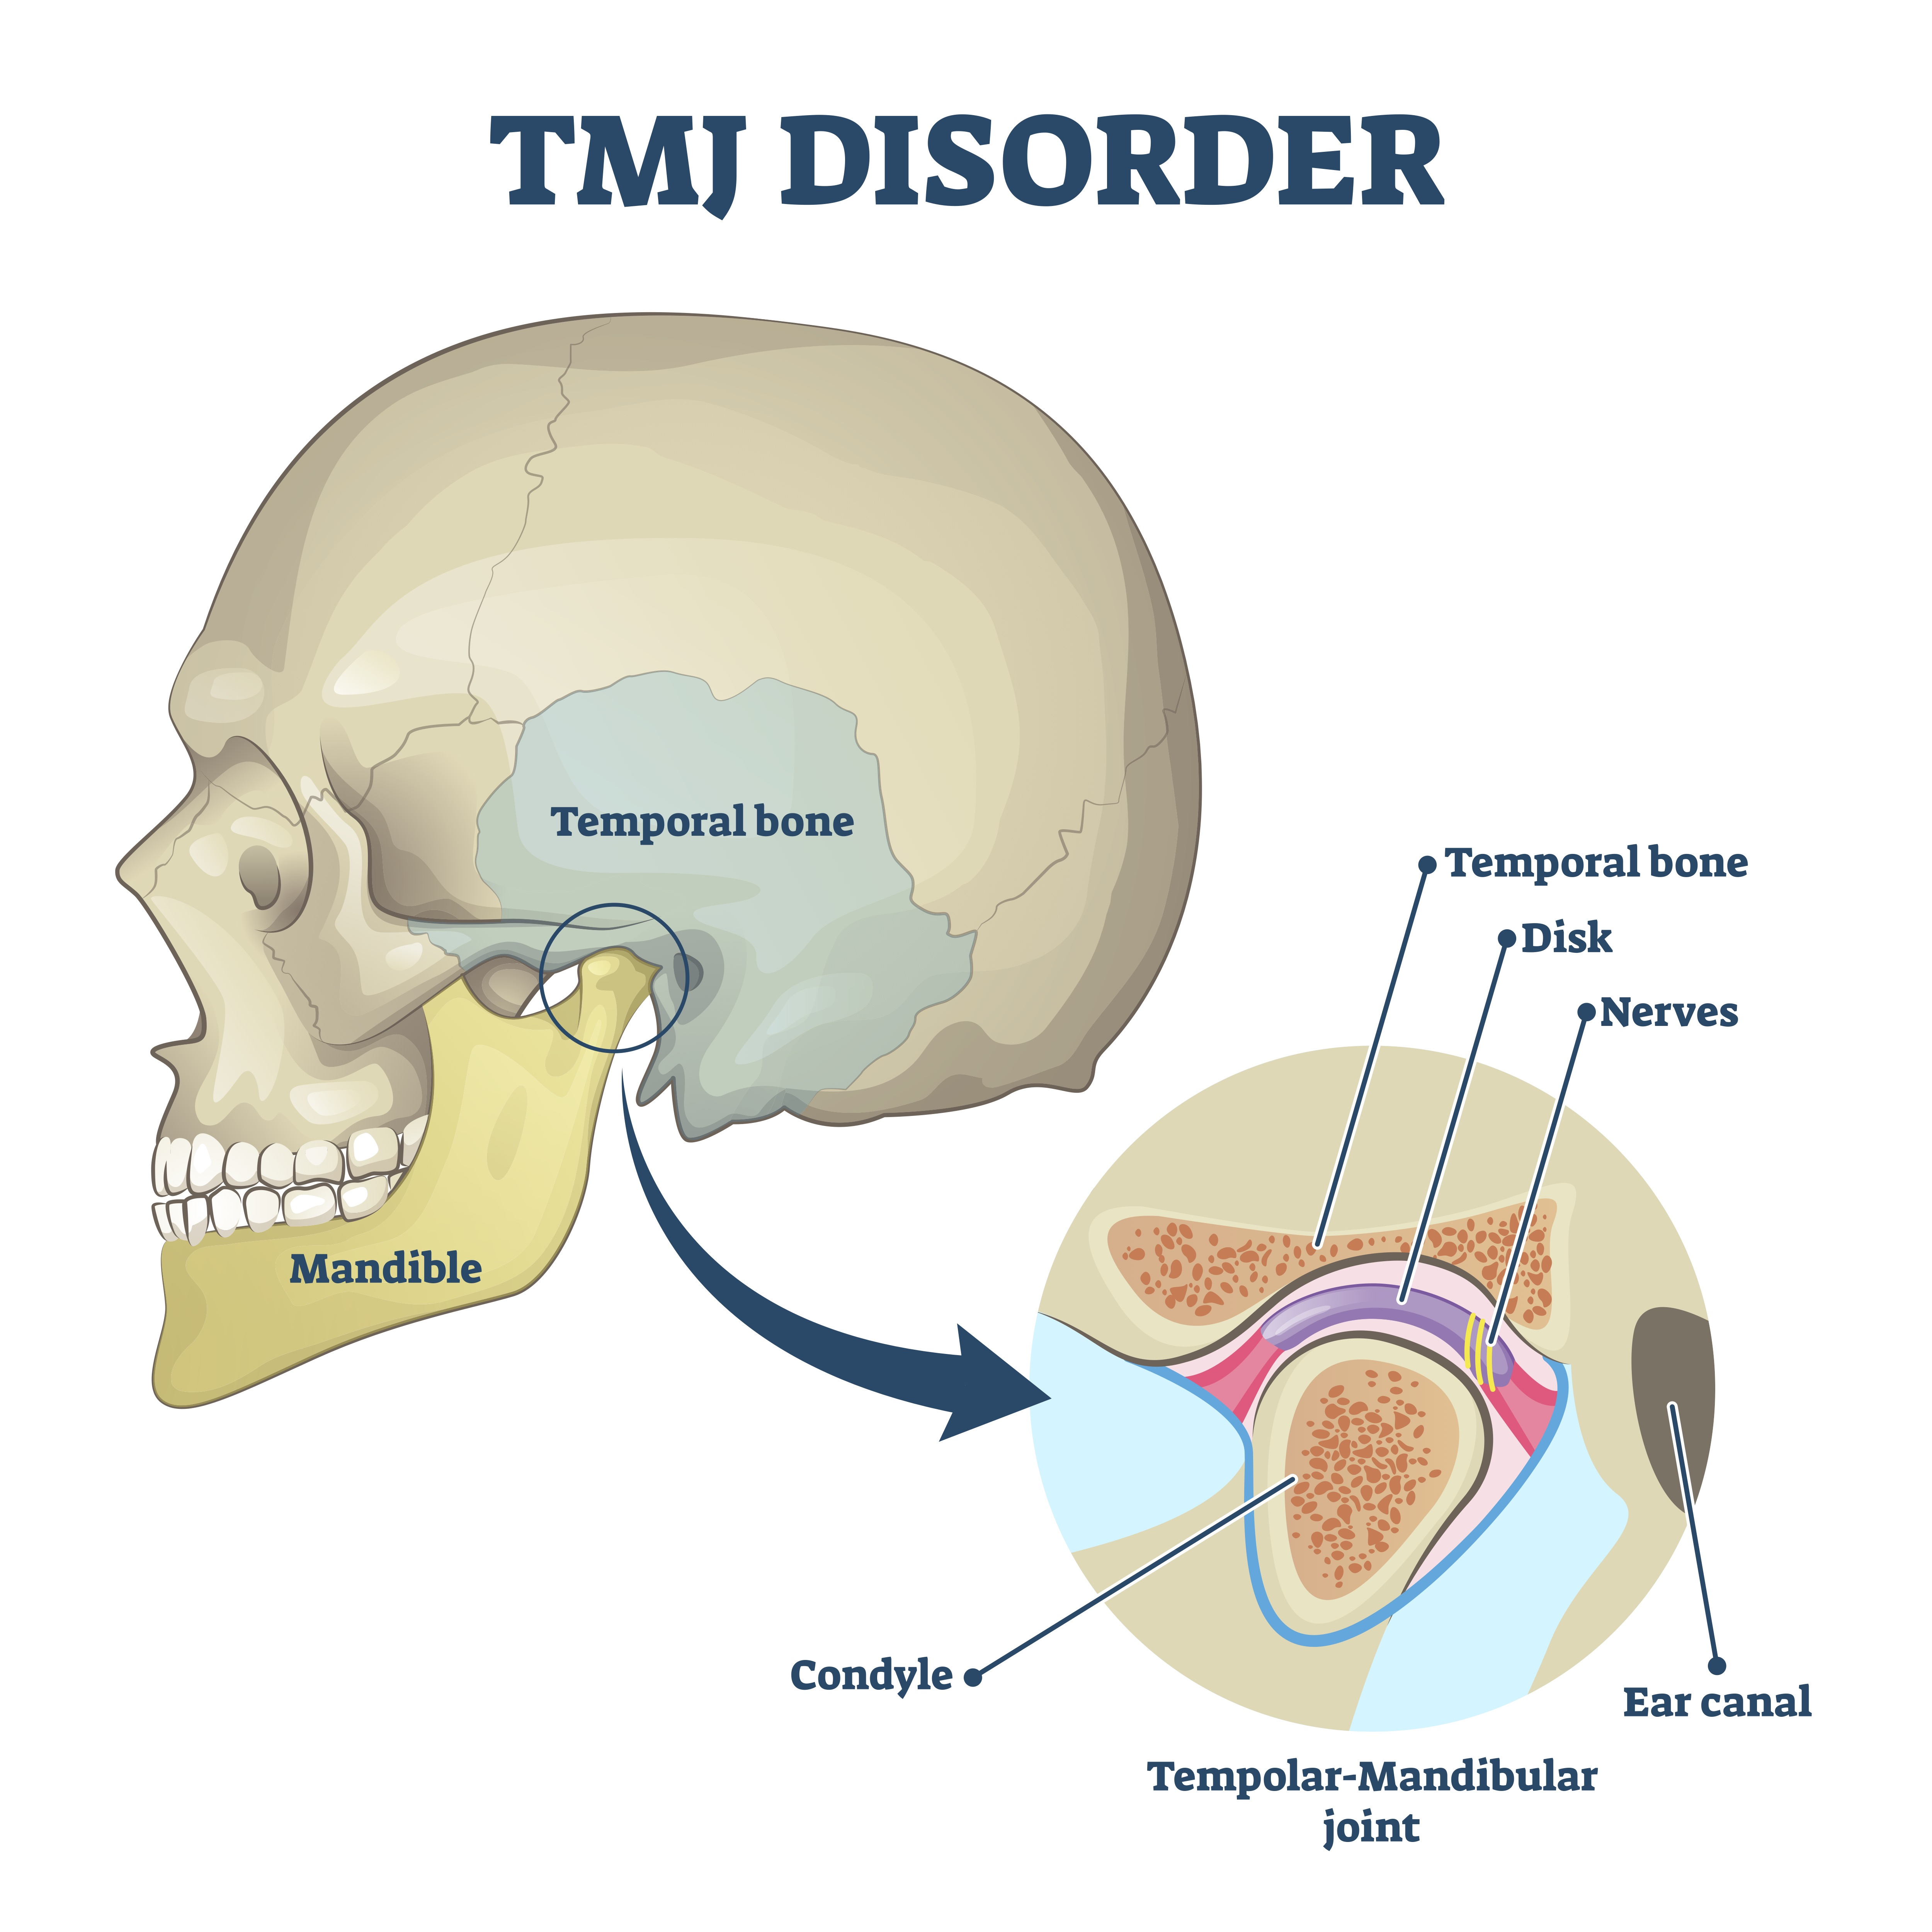 Diagram of a skull indicating the TMJ joint - TMJ Disorders